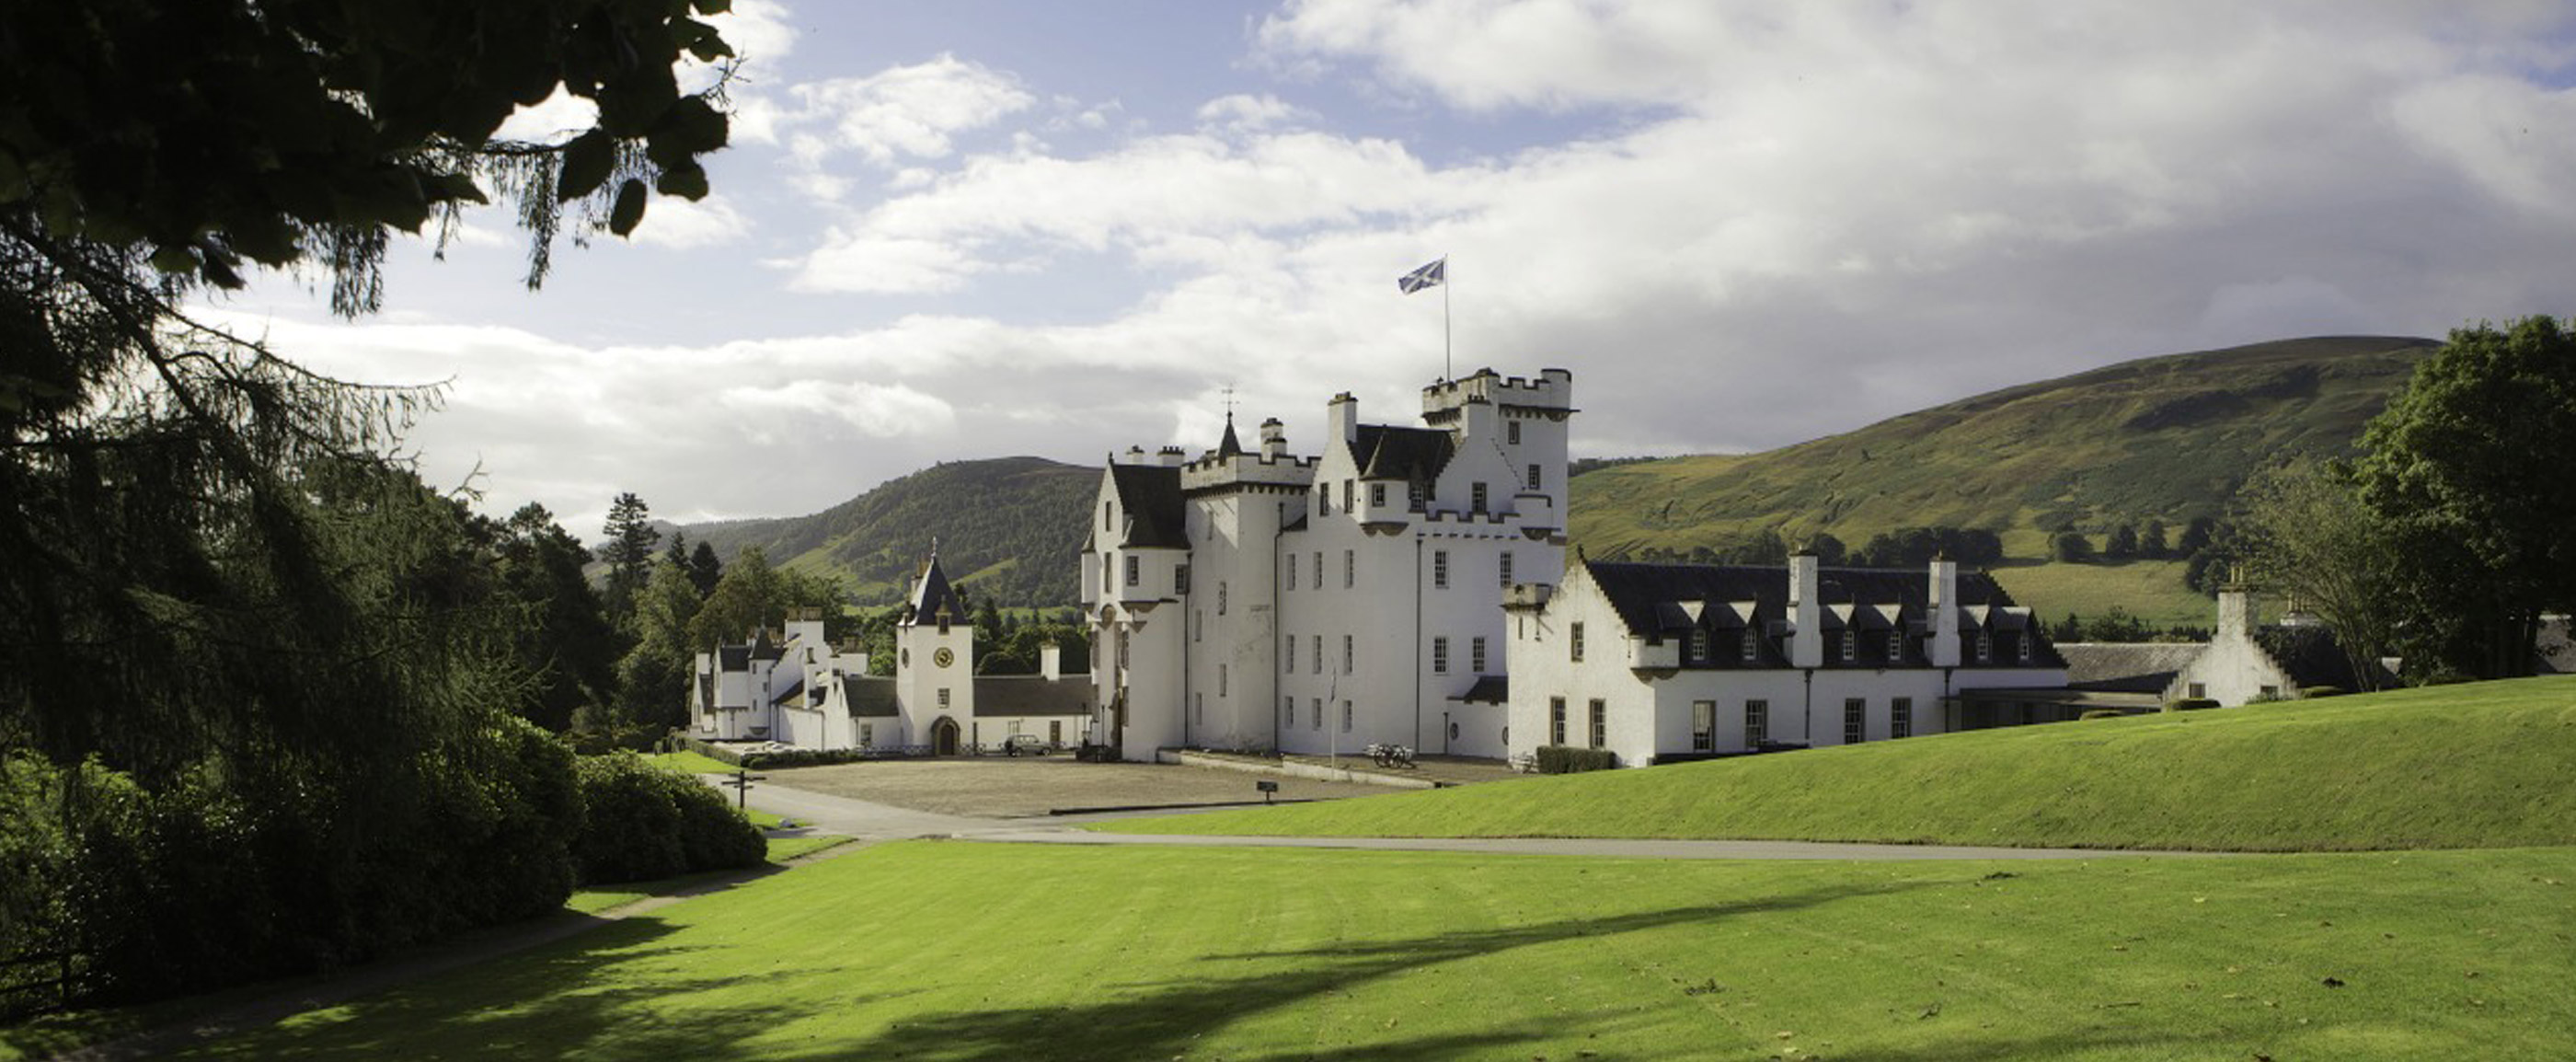 Photo of Blair Castle, a white washed, turreted castle in the Scottish Highlands